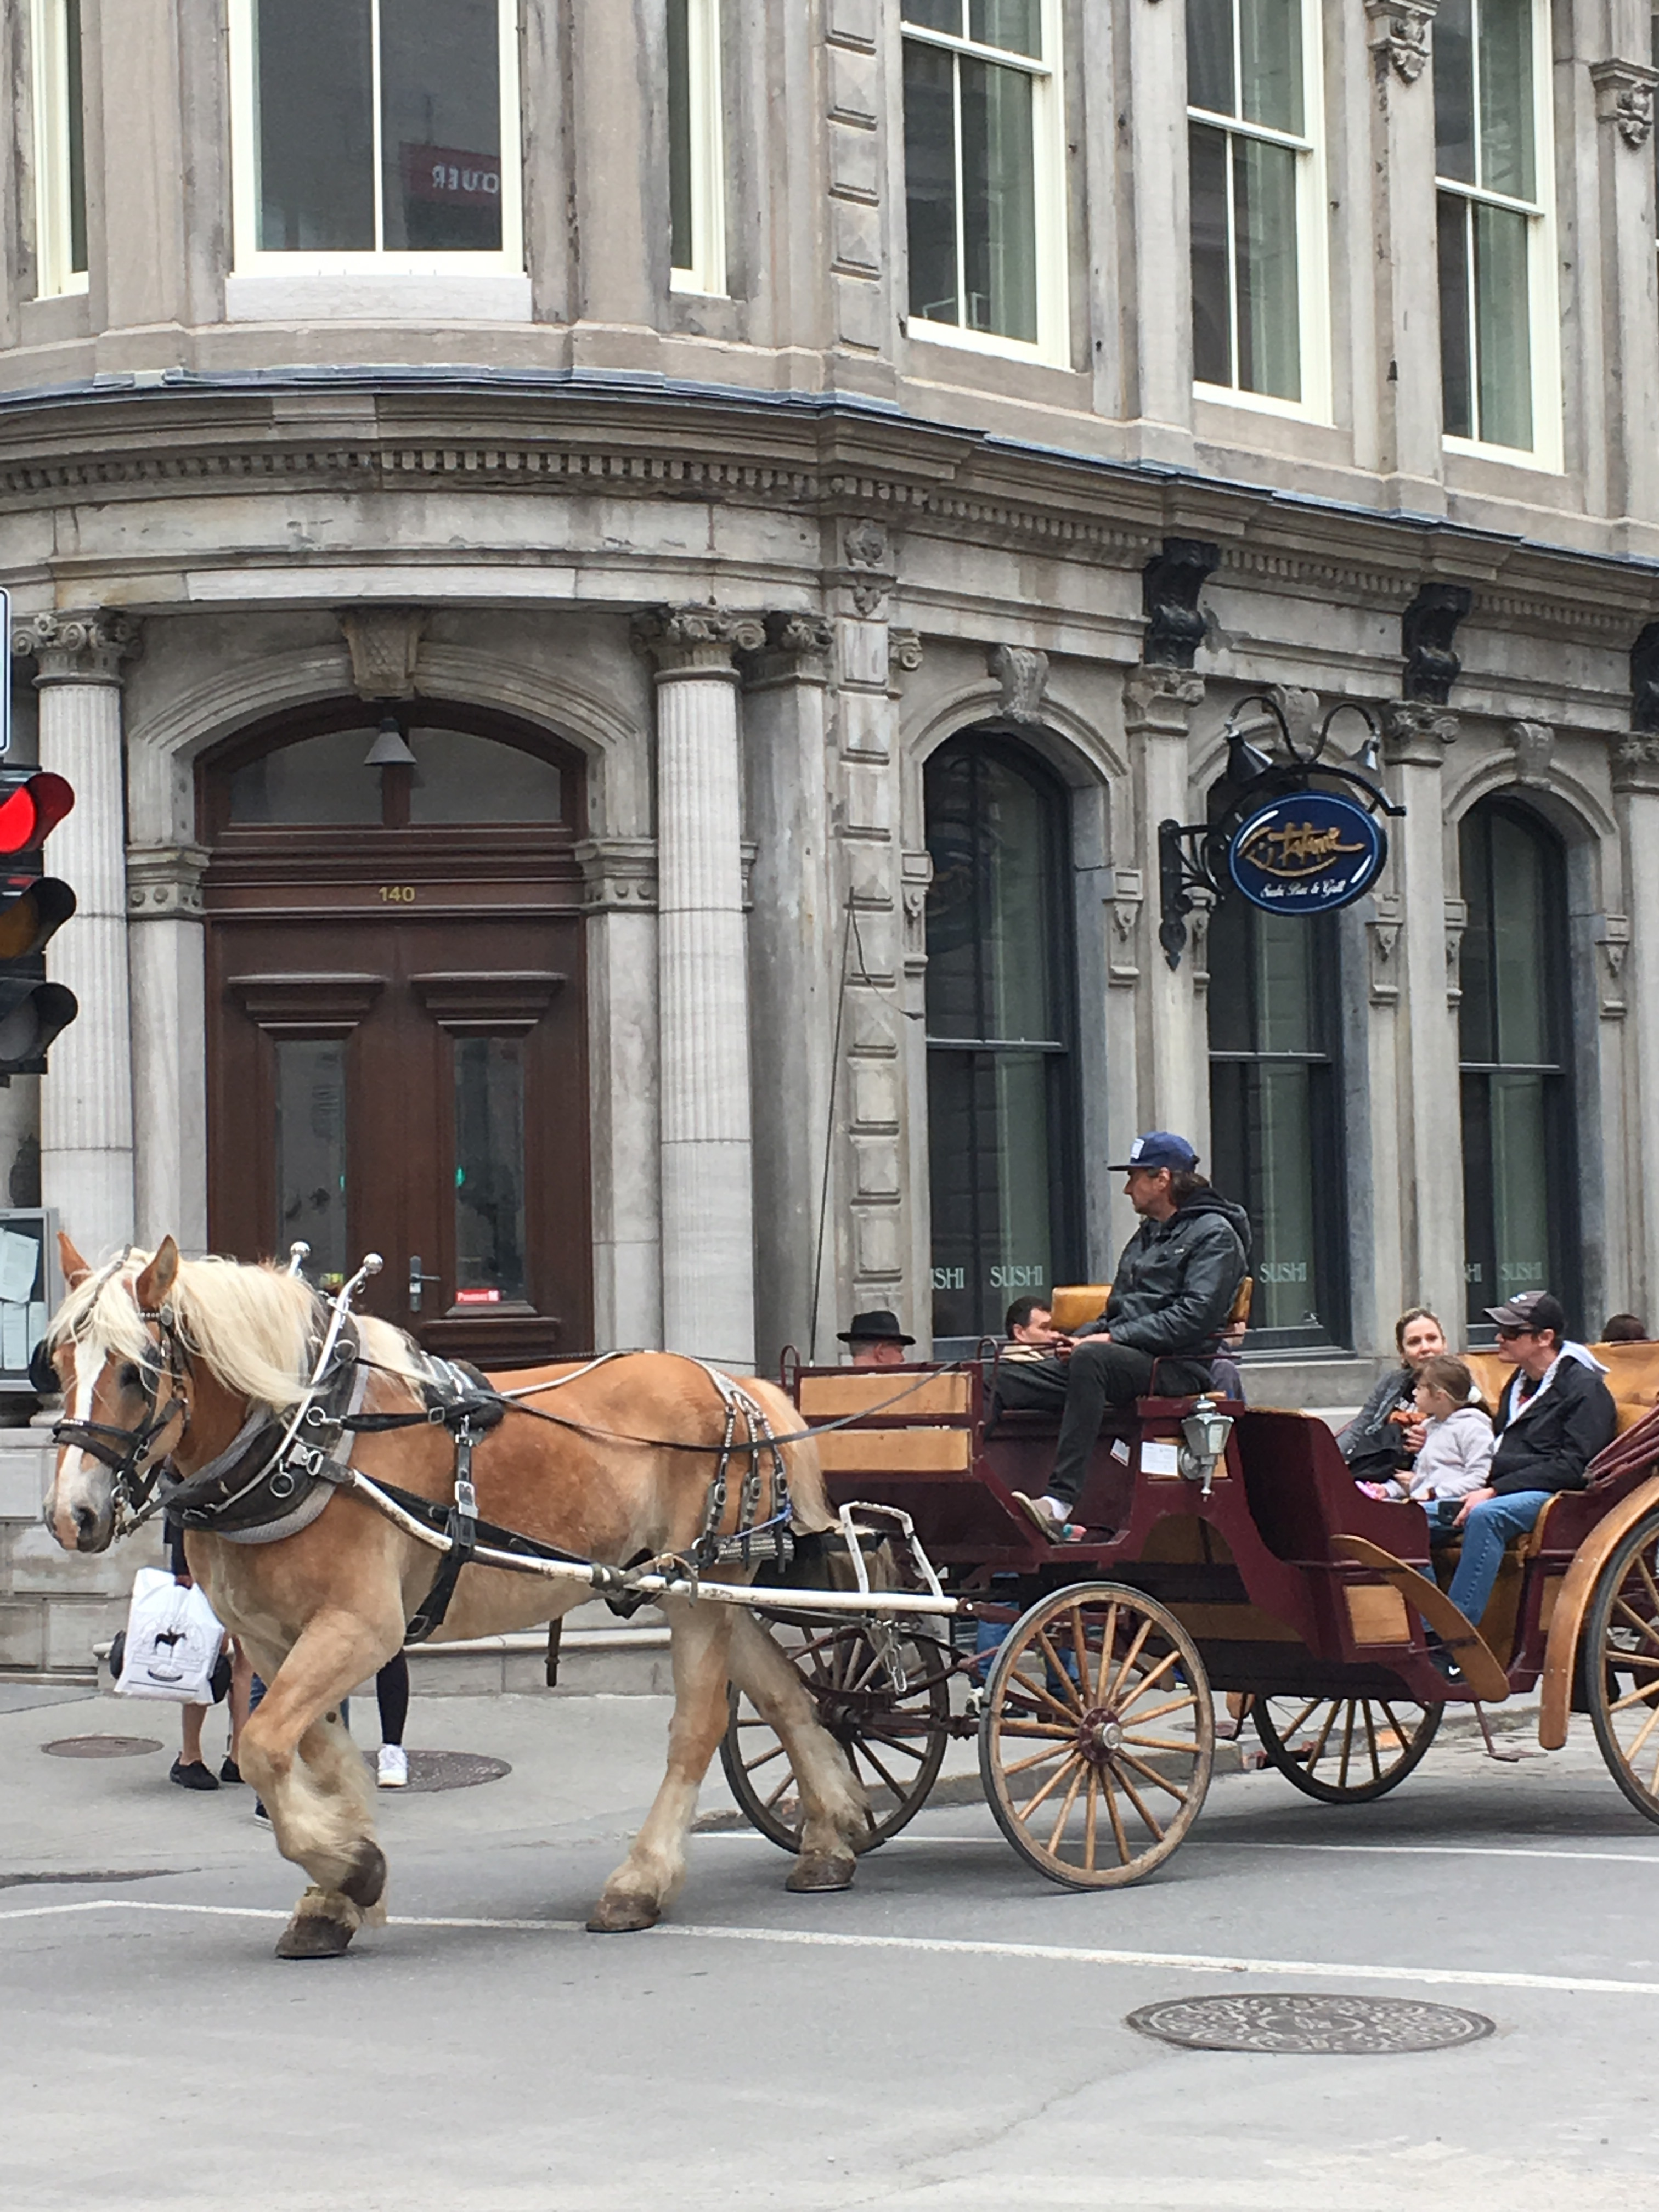 Horse and carriage rider in Old Montréal